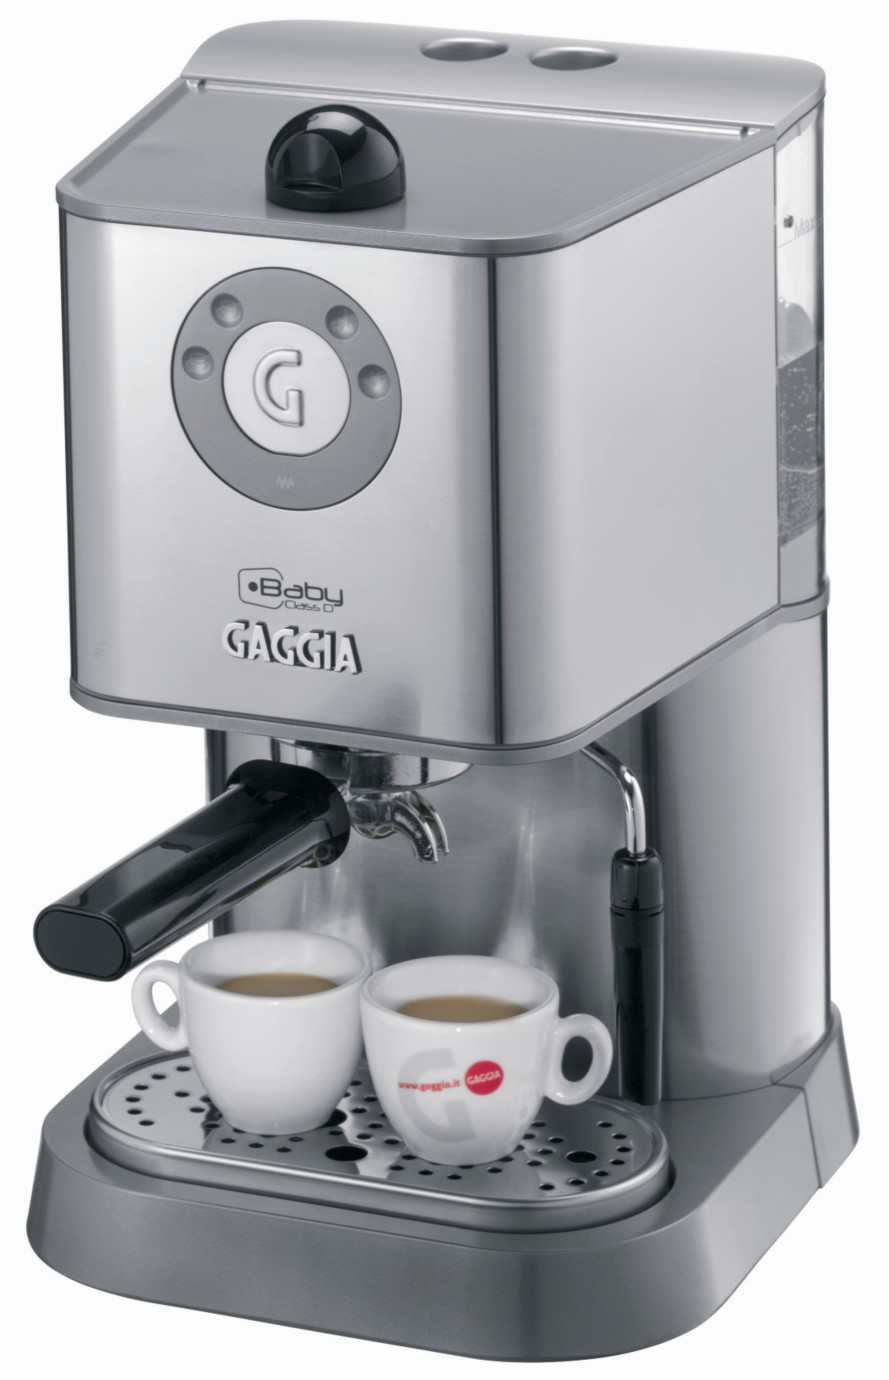 Gaggia Baby Coffee Maker Review : Gaggia Baby Class Dose Coffee Maker - review, compare prices, buy online